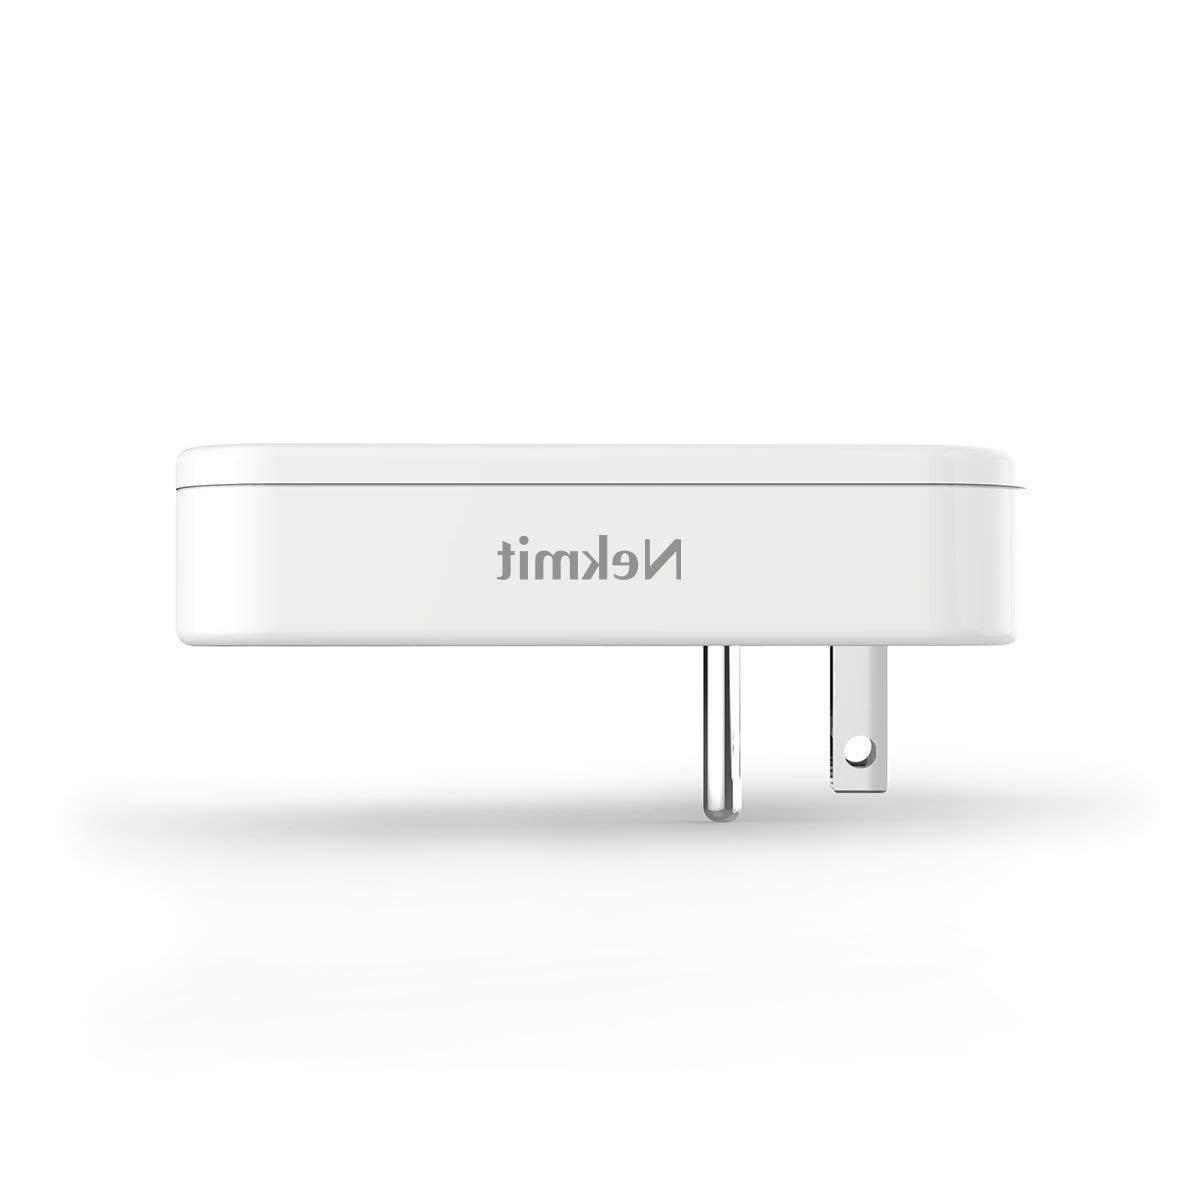 Nekmit Dual Thin Flat USB Charger with